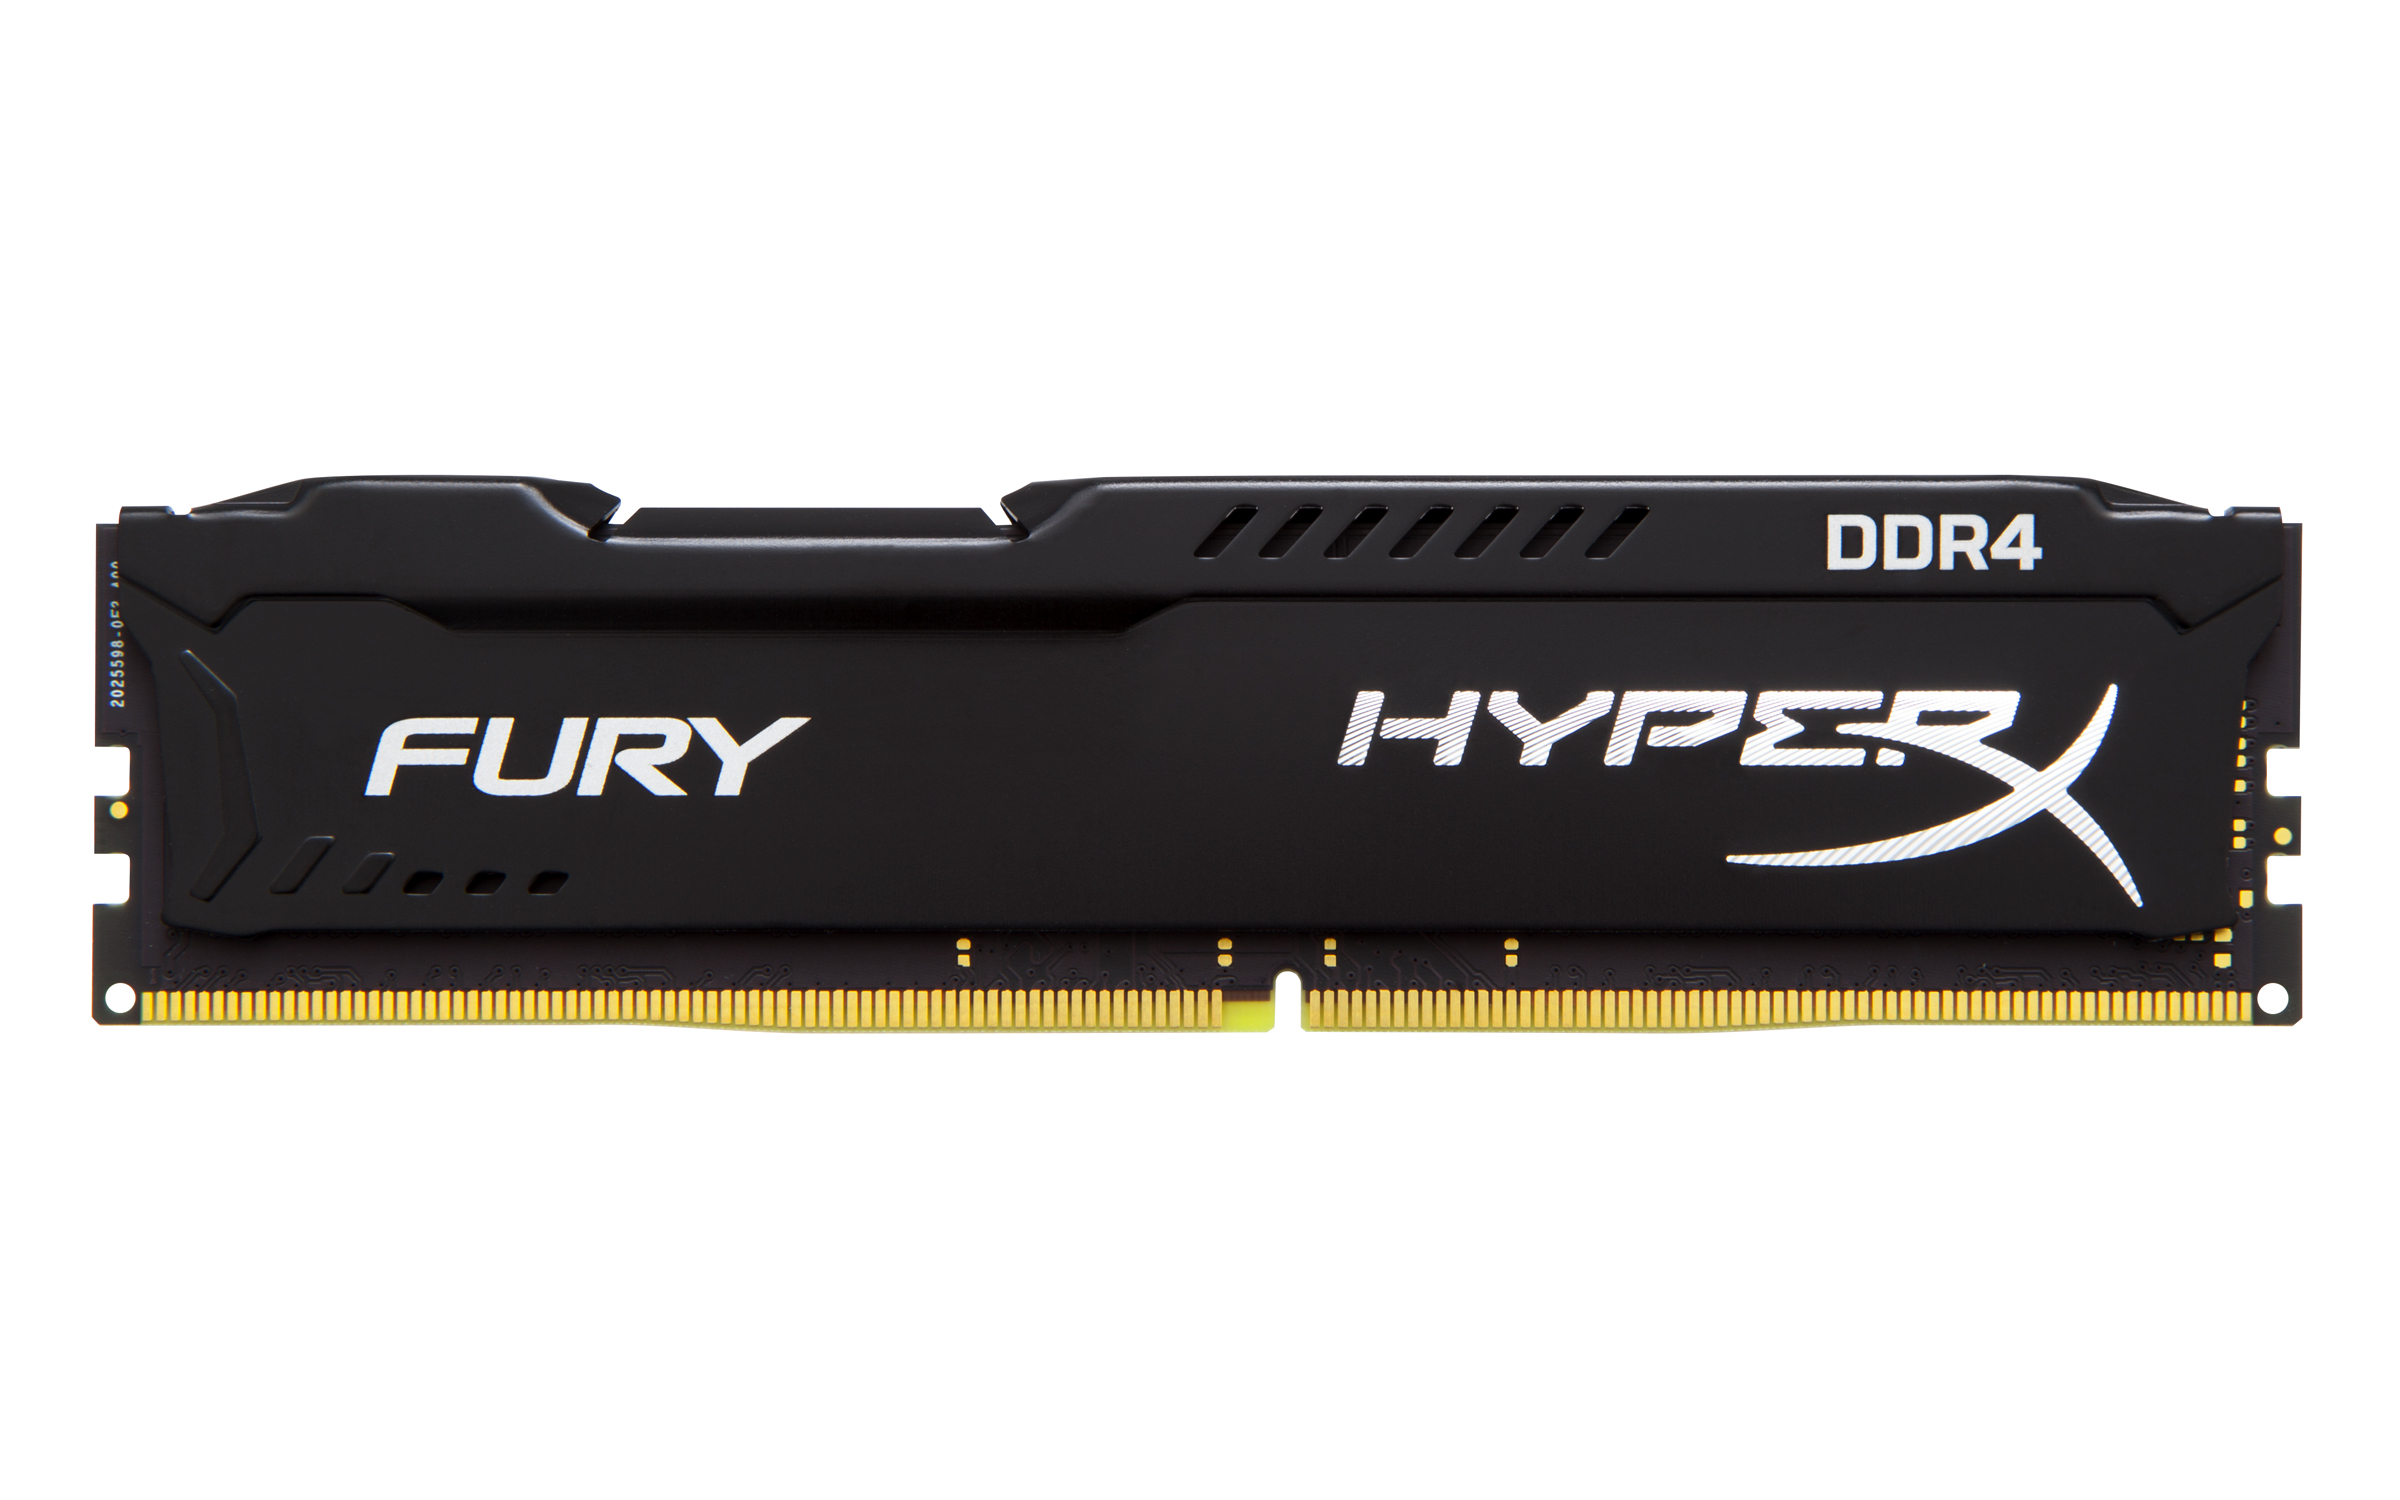 Ram Kingston 8GB 2400Mhz DDR4 CL15 DIMM Fury Hyper